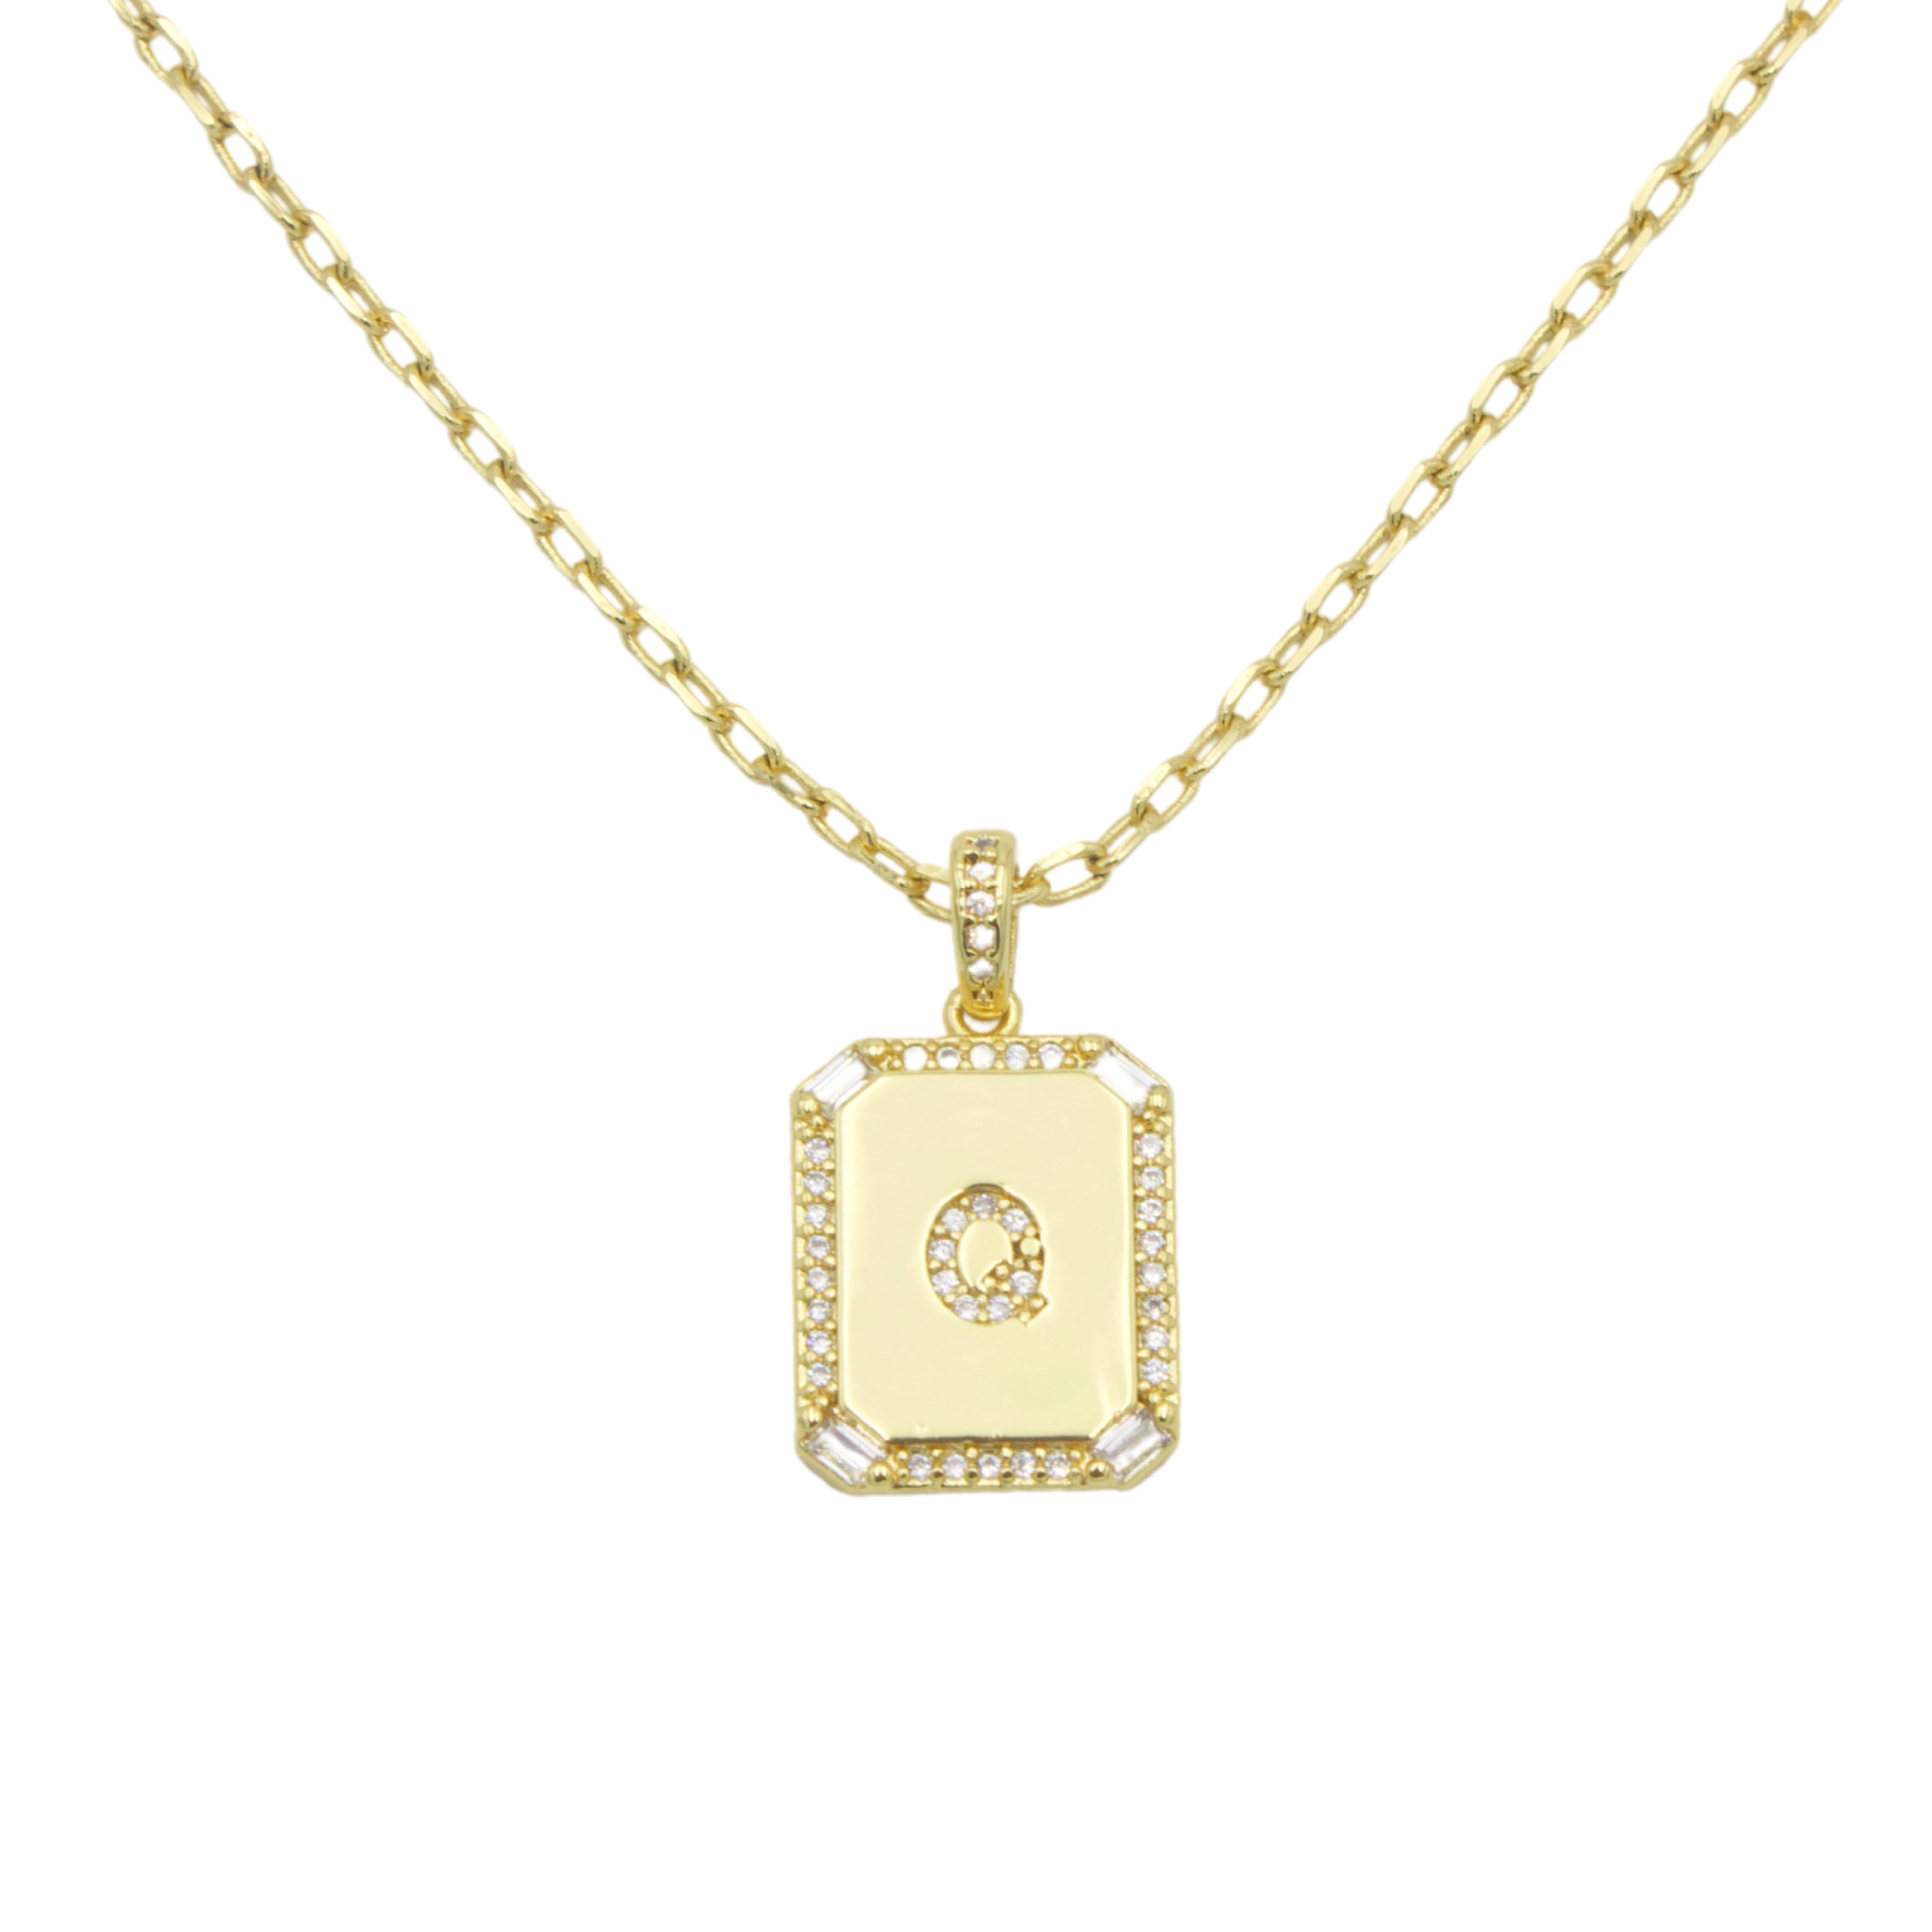 AW Boutique's gold filled 16 inch cable chain necklace finished with a dainty initial pendant with cubic zirconia detail. Q initial shown.